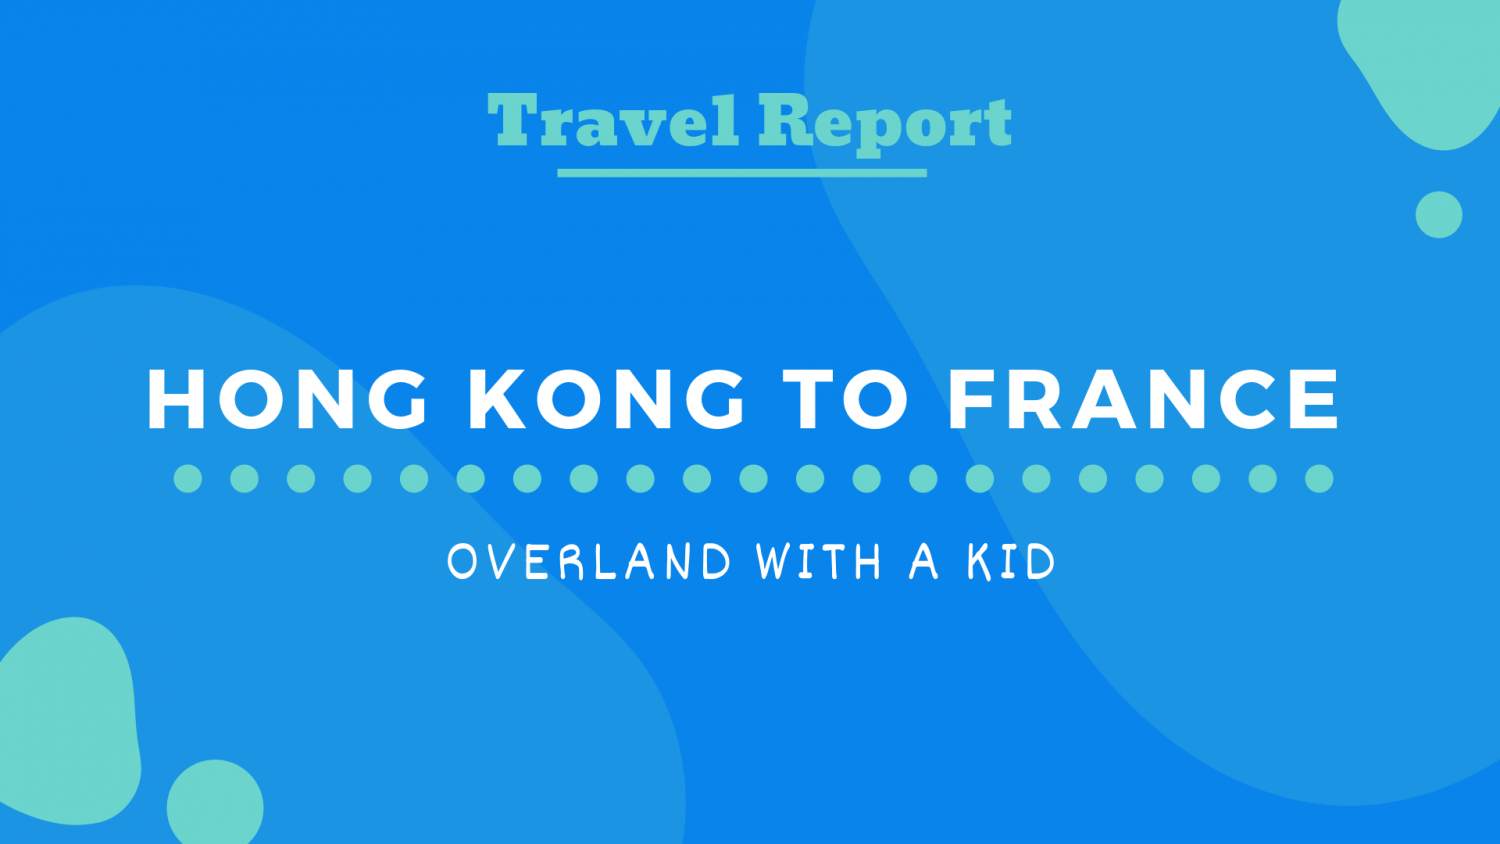 Travel report : Hong Kong to France overland with a kid